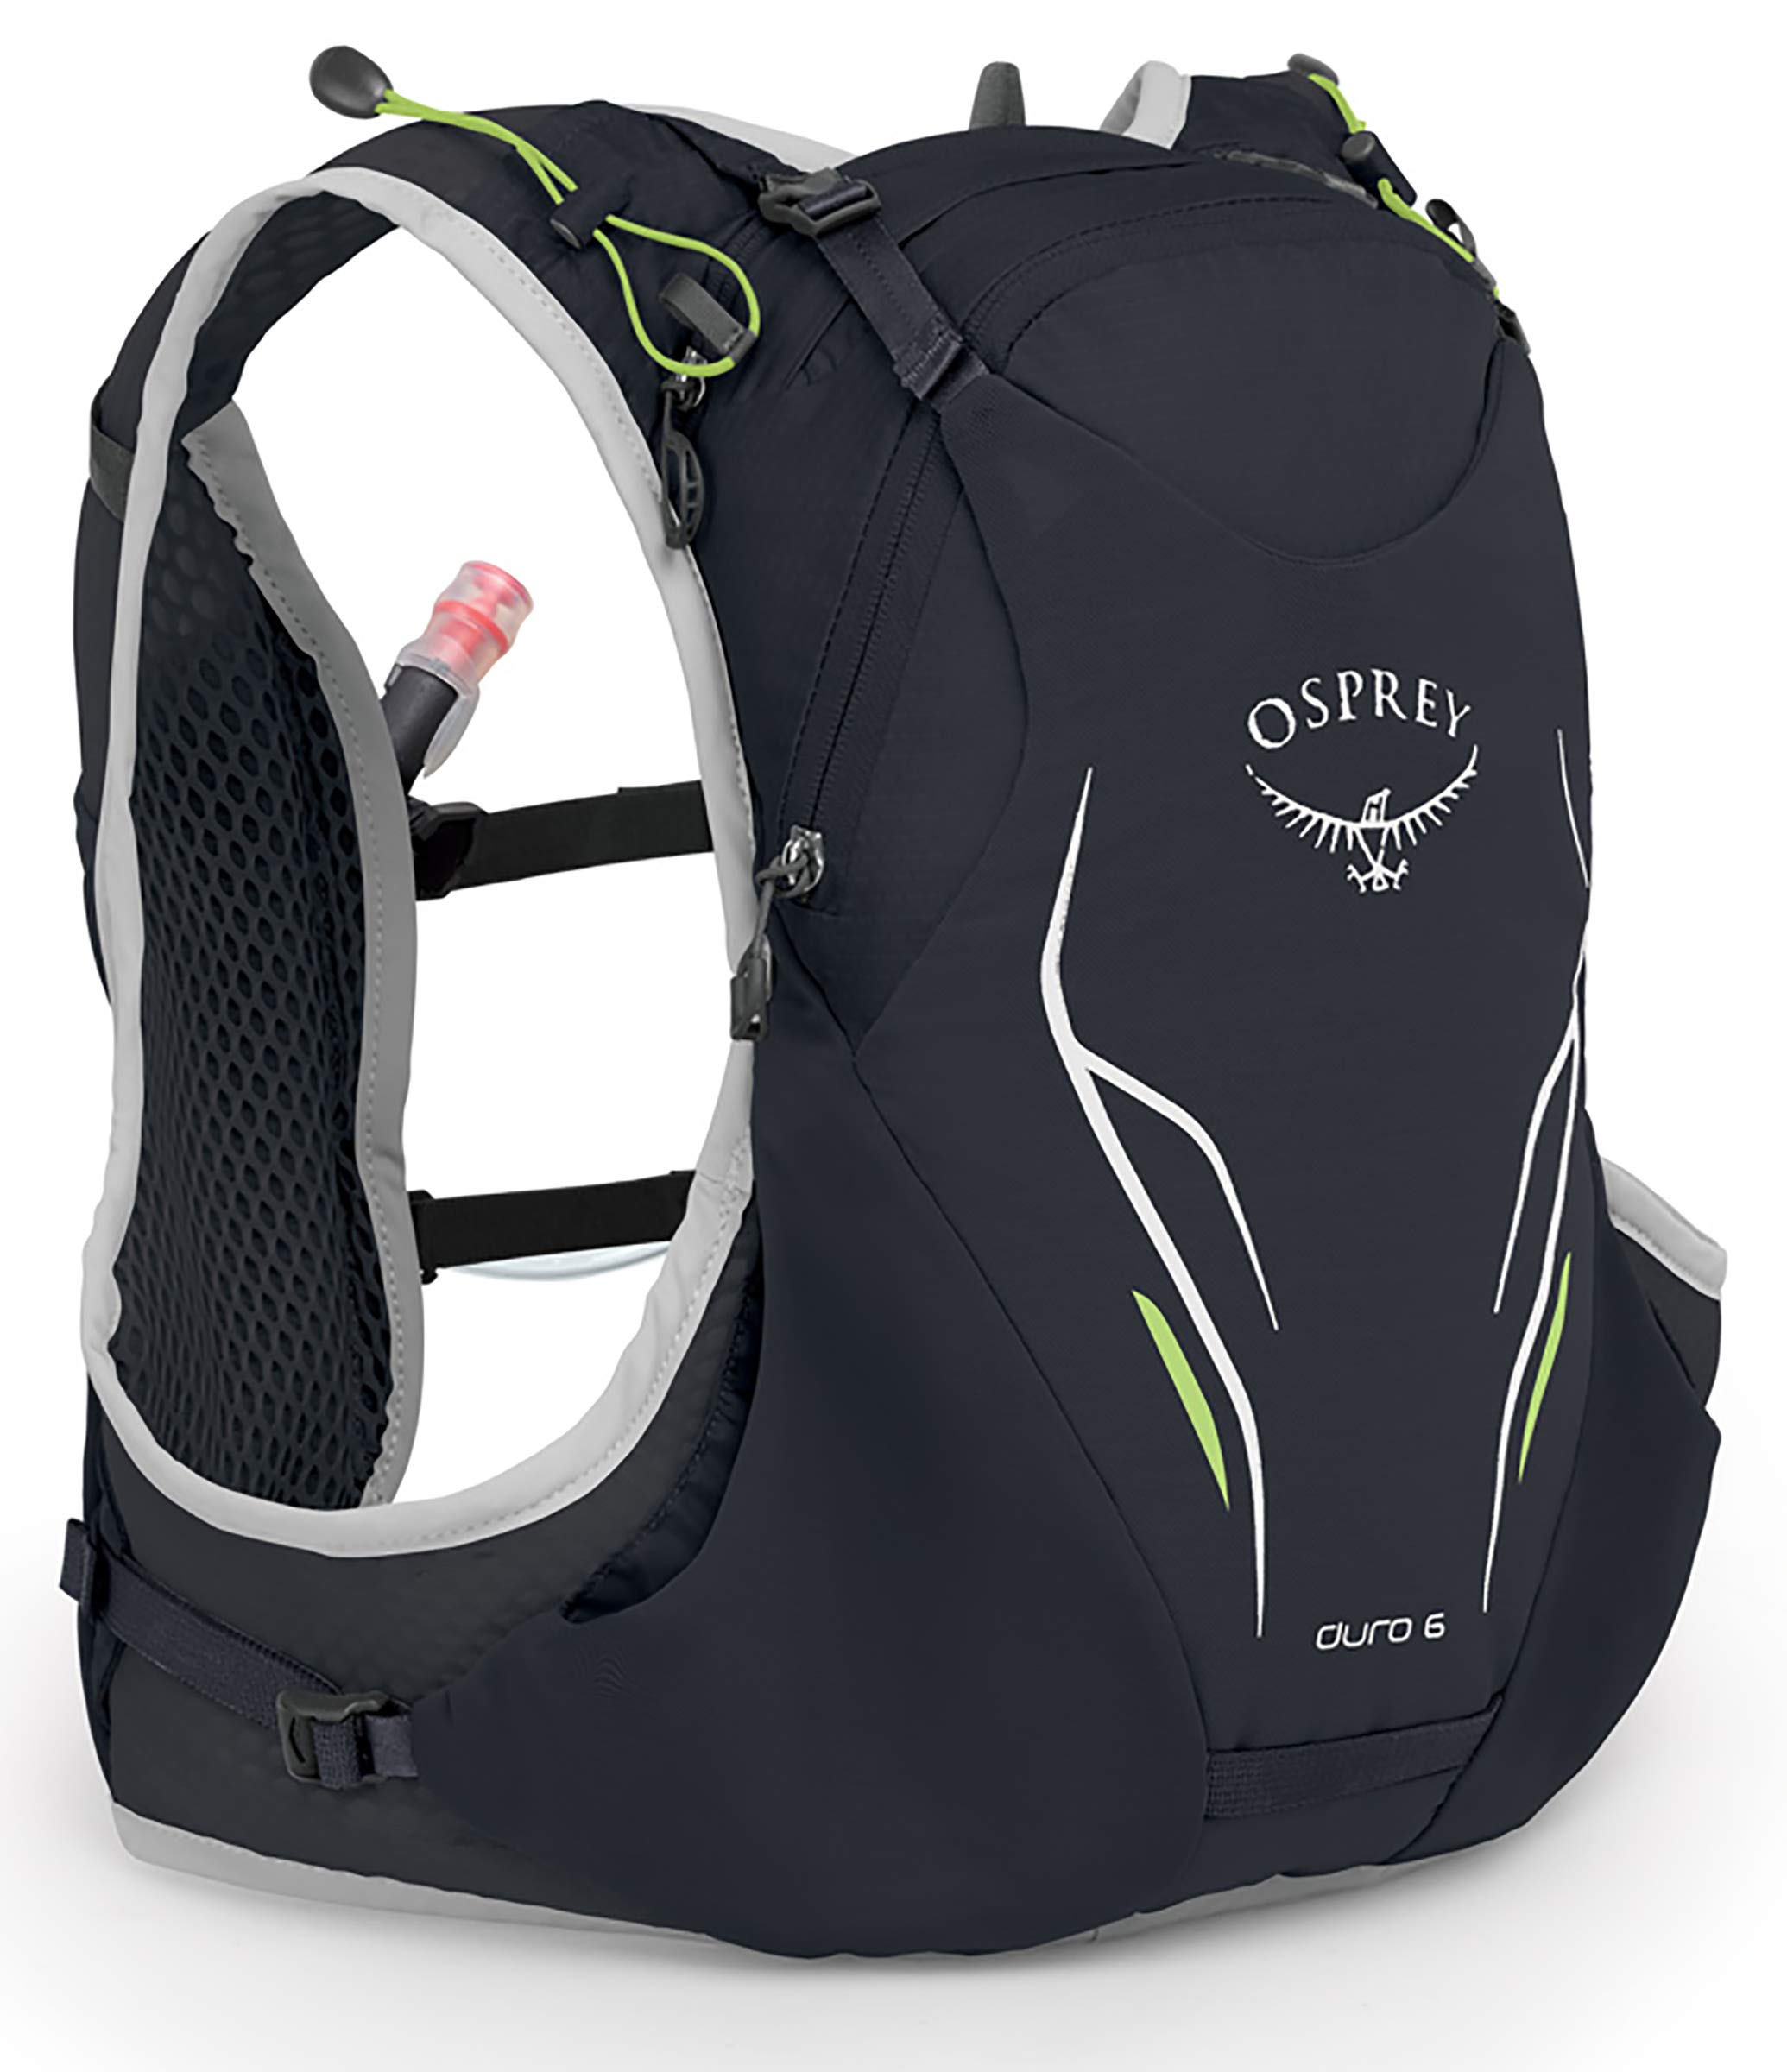 Osprey Packs Duro 6 Running Hydration Vest, Alpine Black, Small/Medium